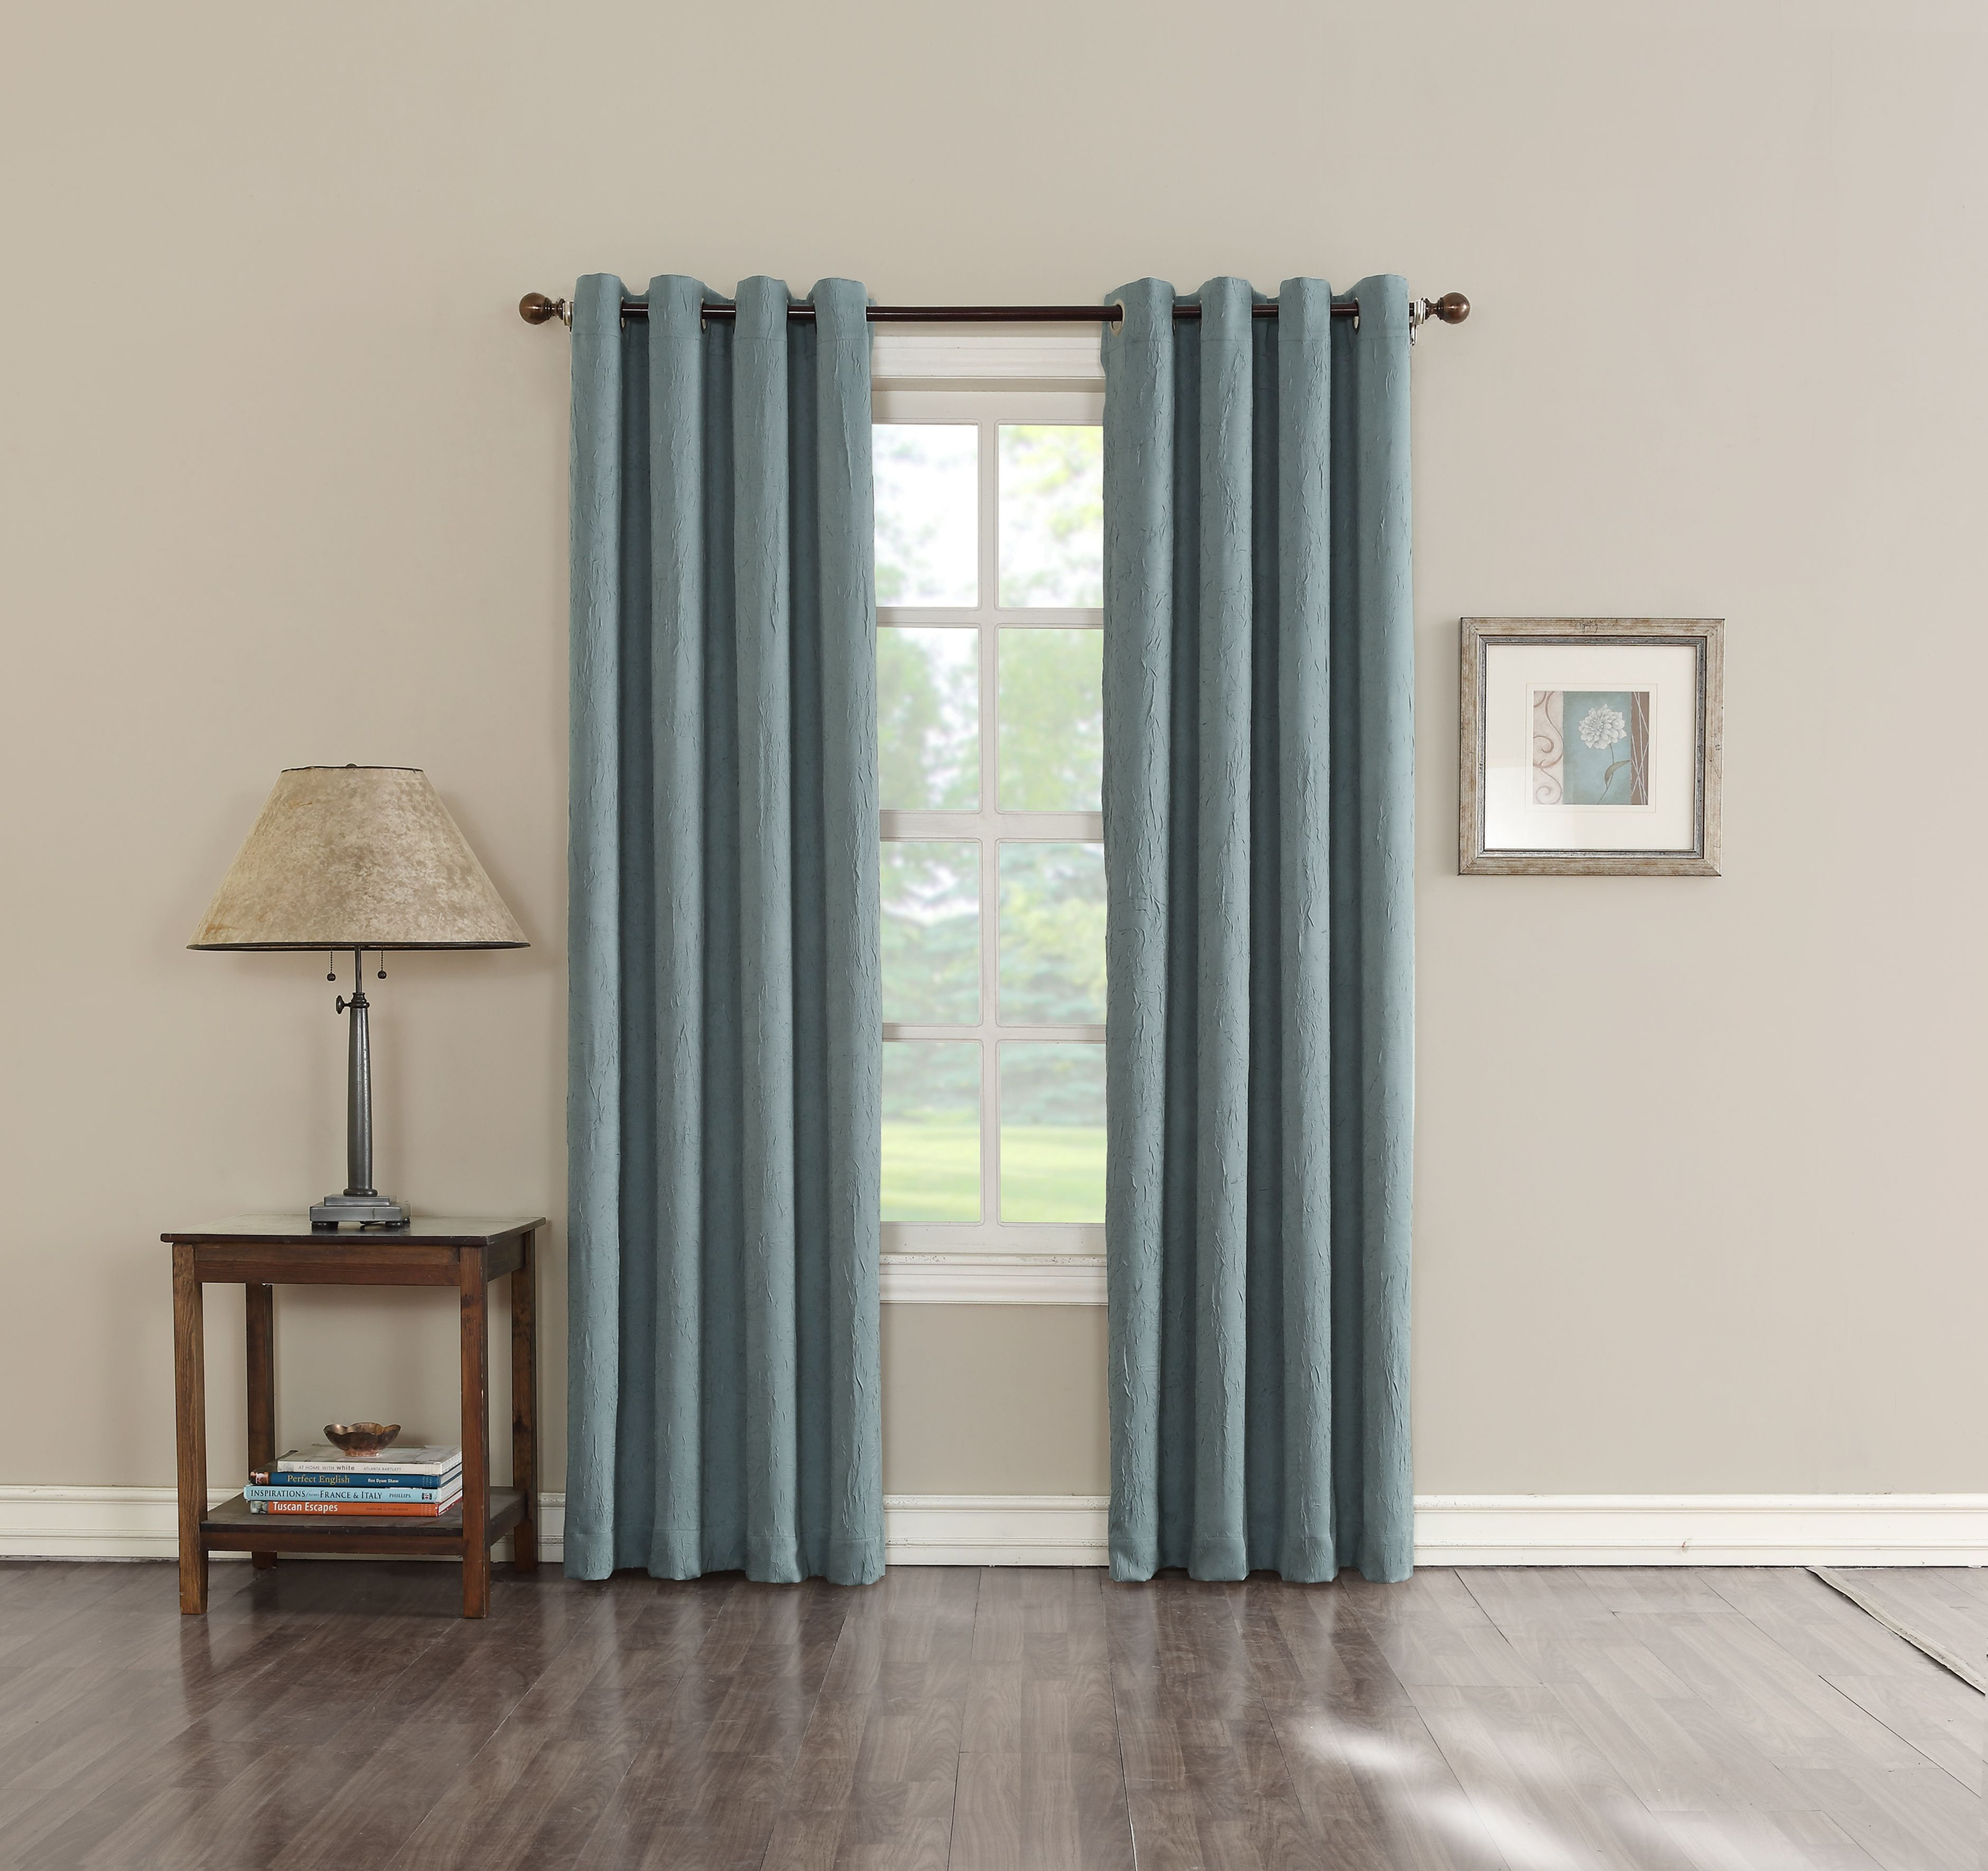 Sears Online Panel Curtains Curtains Room Darkening #sears #curtains #for #living #room